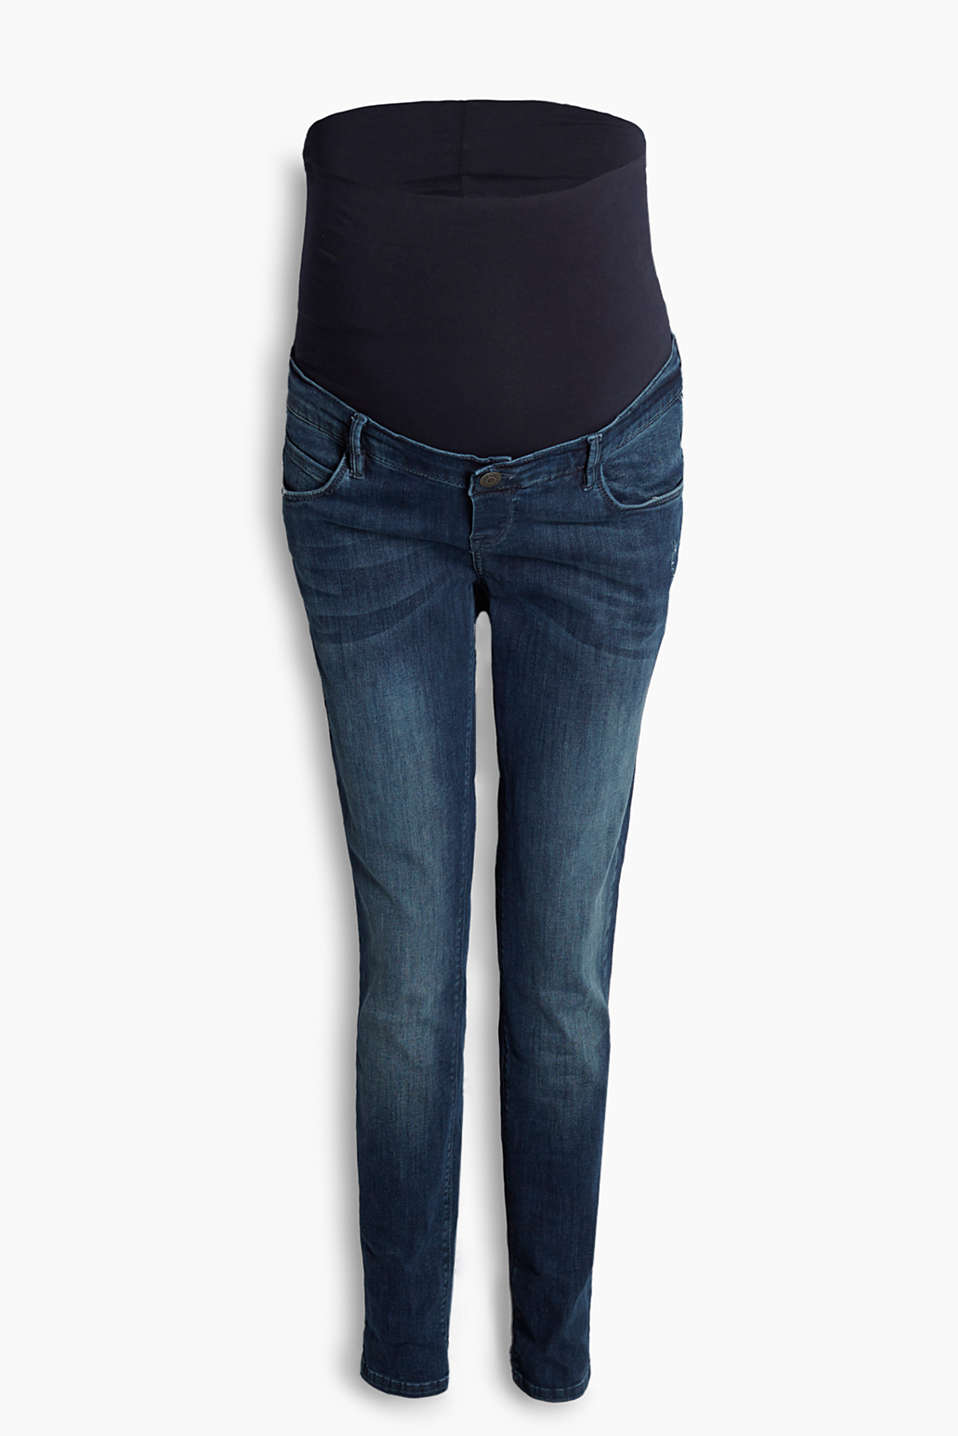 Casual stretch denim jeans with discreet vintage effects and adjustable over-bump waistband